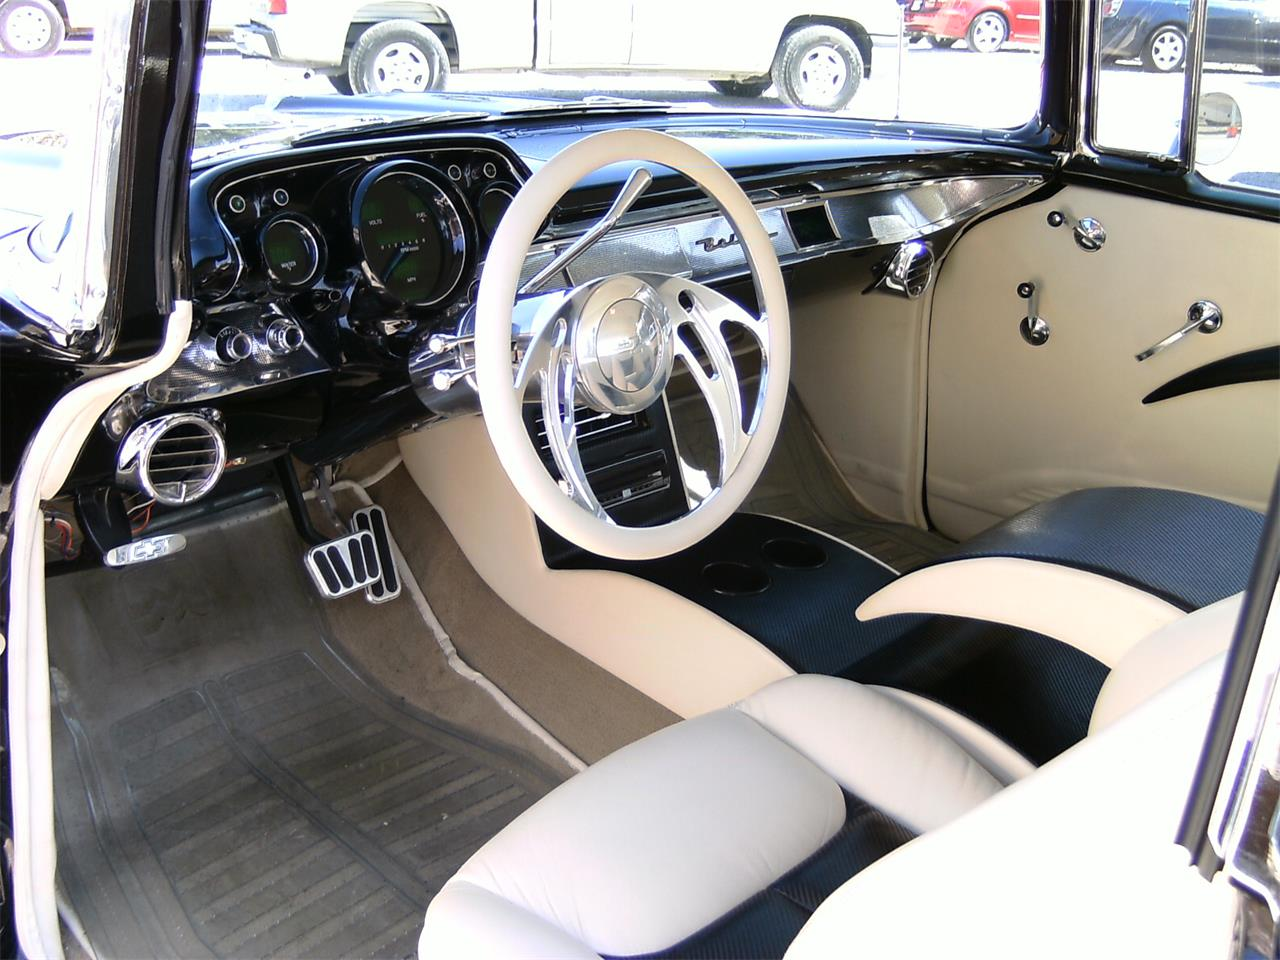 Large Picture of '57 Chevrolet Bel Air 2-Door Hardtop - $84,900.00 Offered by a Private Seller - NMSZ